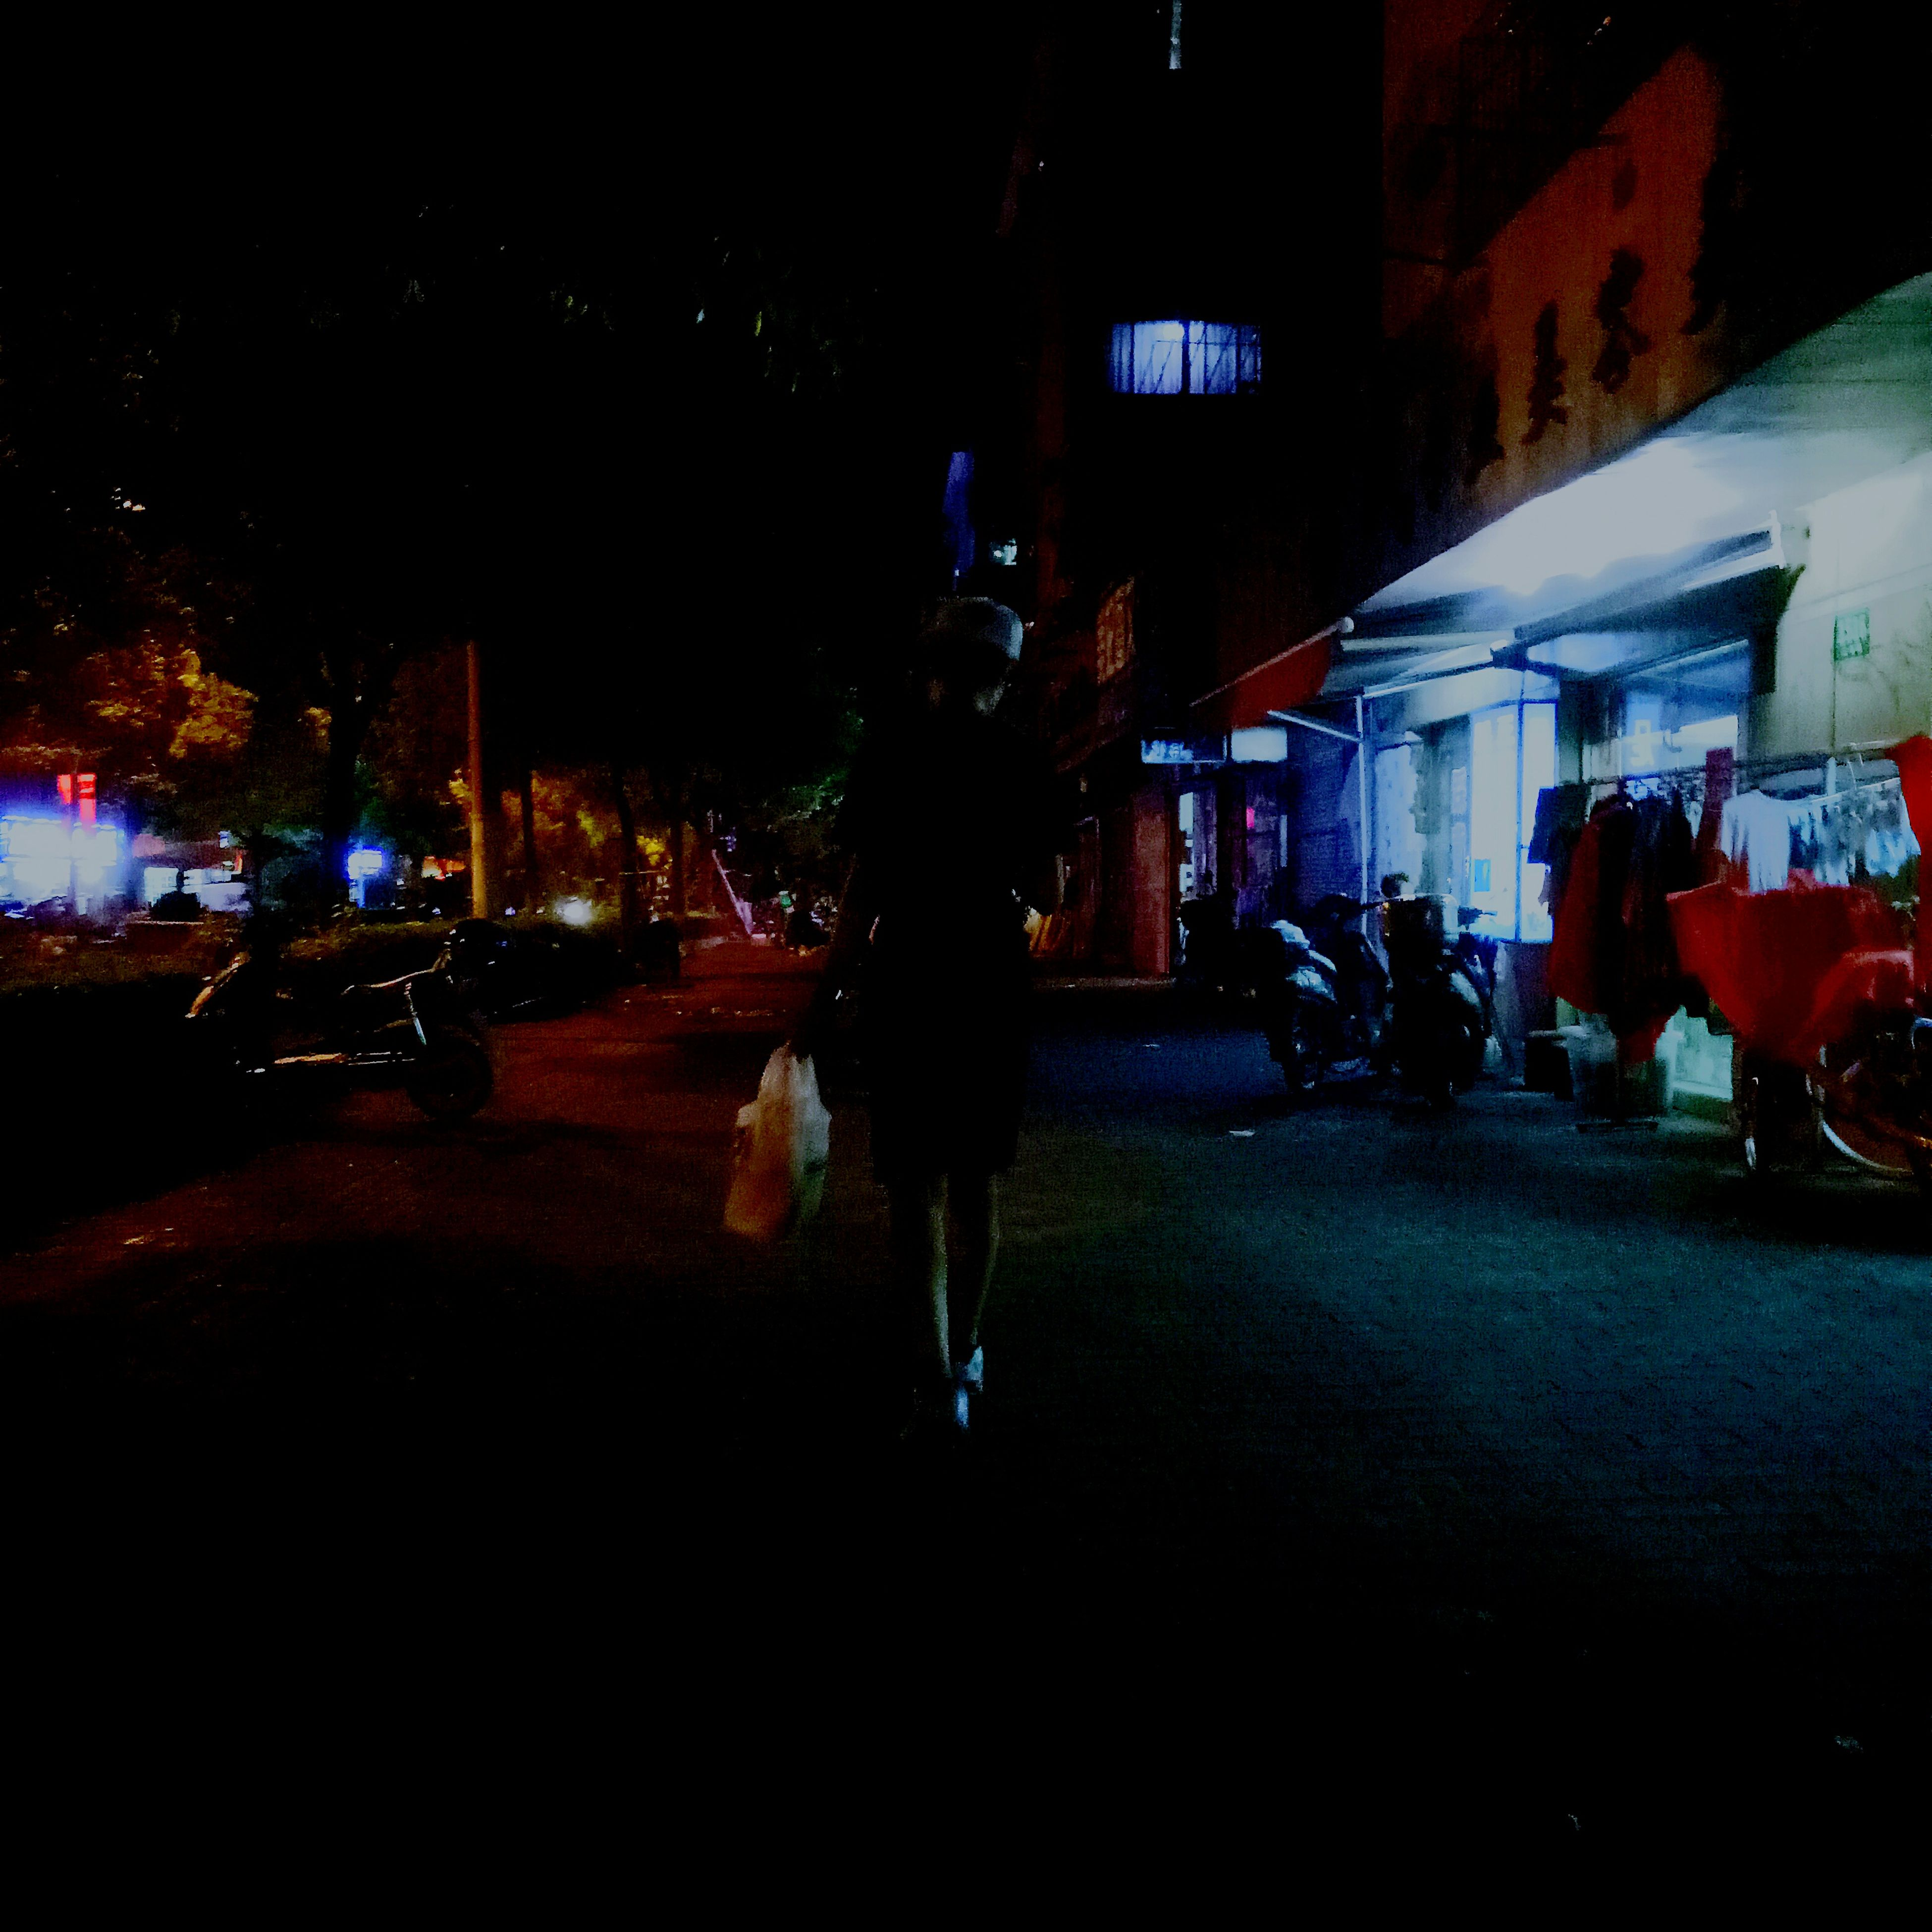 night, illuminated, lifestyles, leisure activity, city life, city, city street, group of people, outdoors, casual clothing